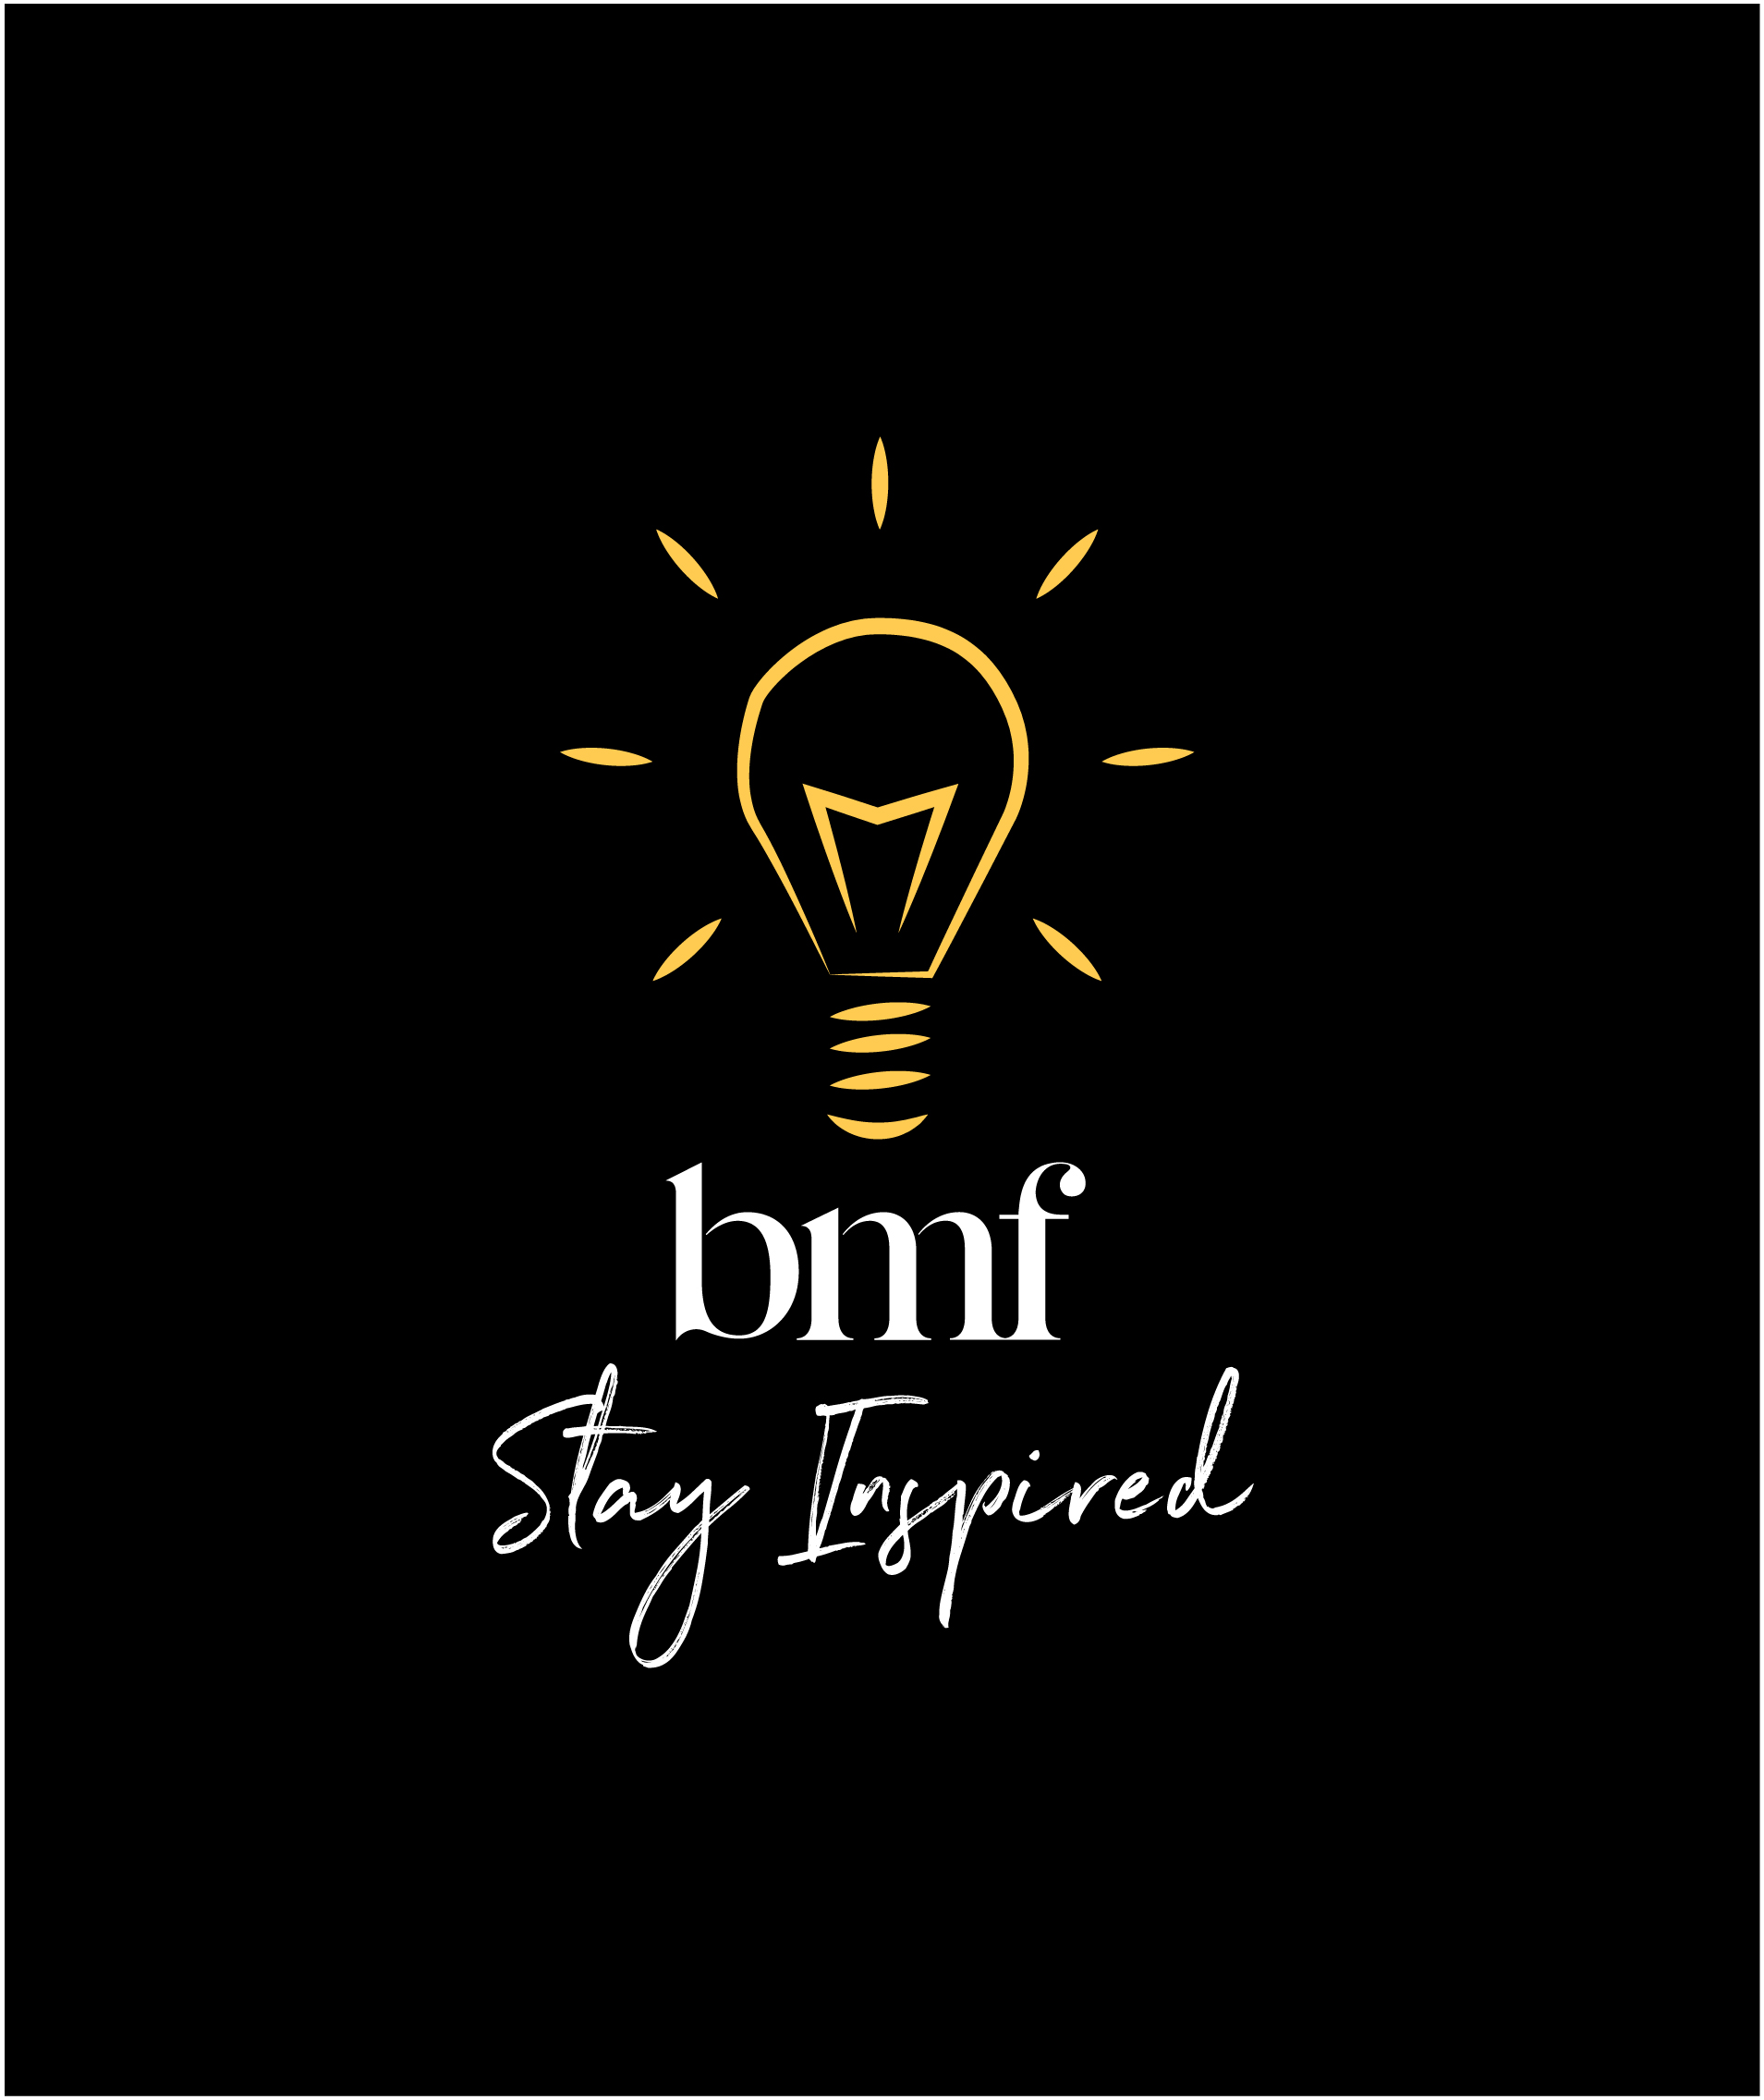 Stay Inspired with BMF - As an agency seeking to both inspire and remain inspired, BMF's stay inspired feature highlights creative insights from a variety of industry musings →